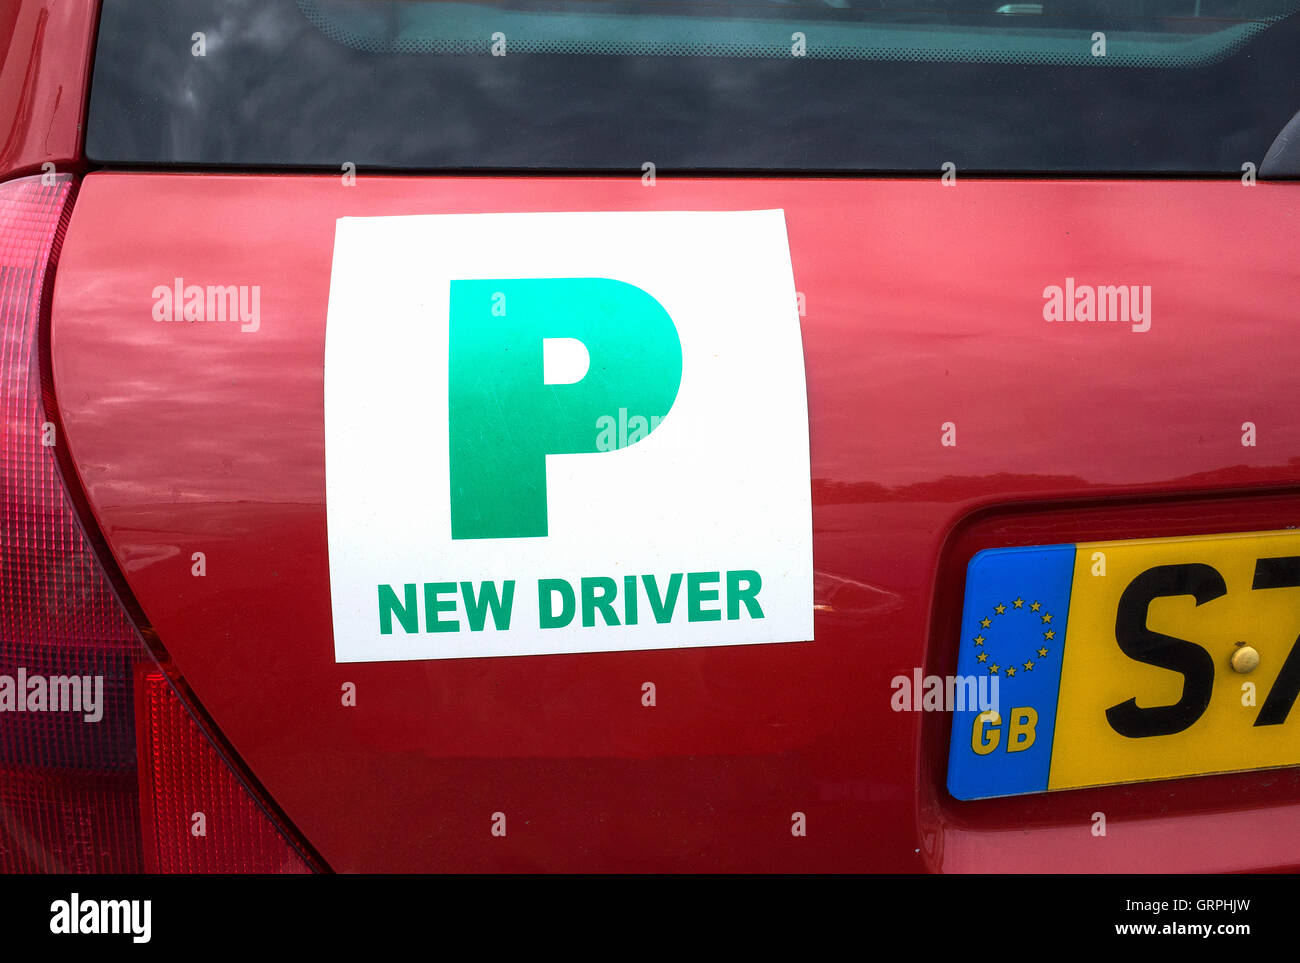 A green UK new driver plate on a red car - Stock Image